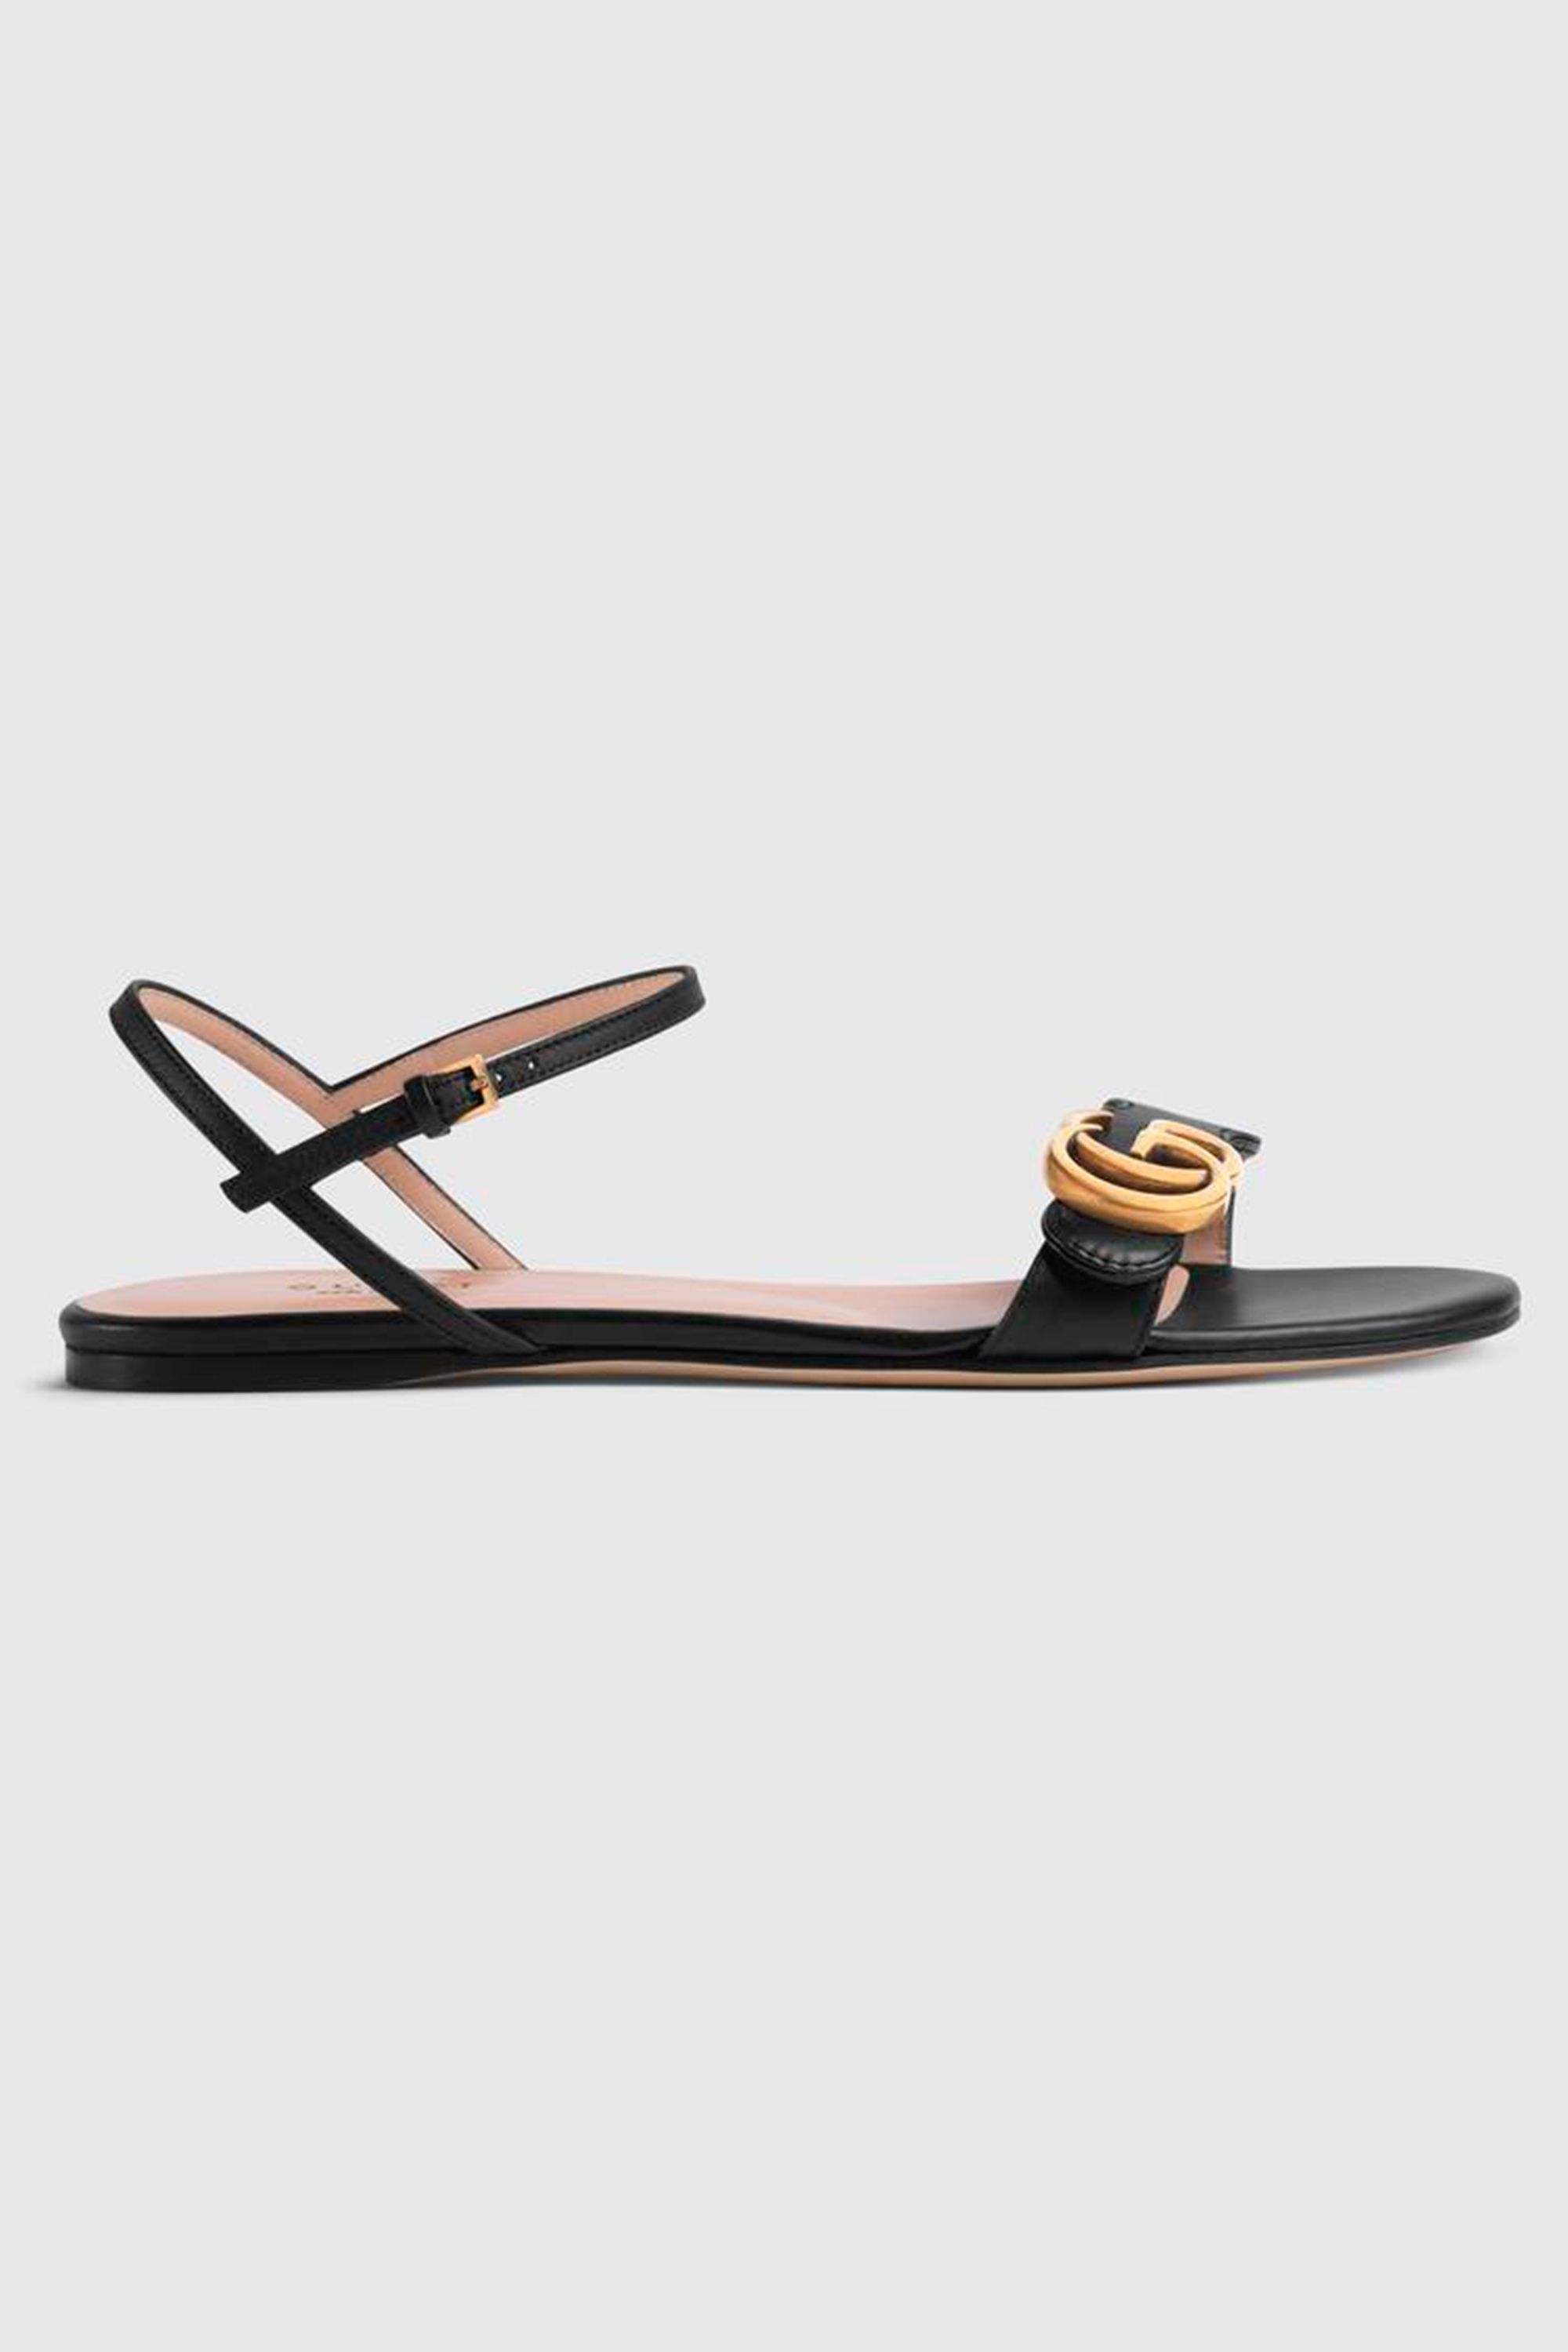 Wrg Woman Footware Sandals Gucci Brands